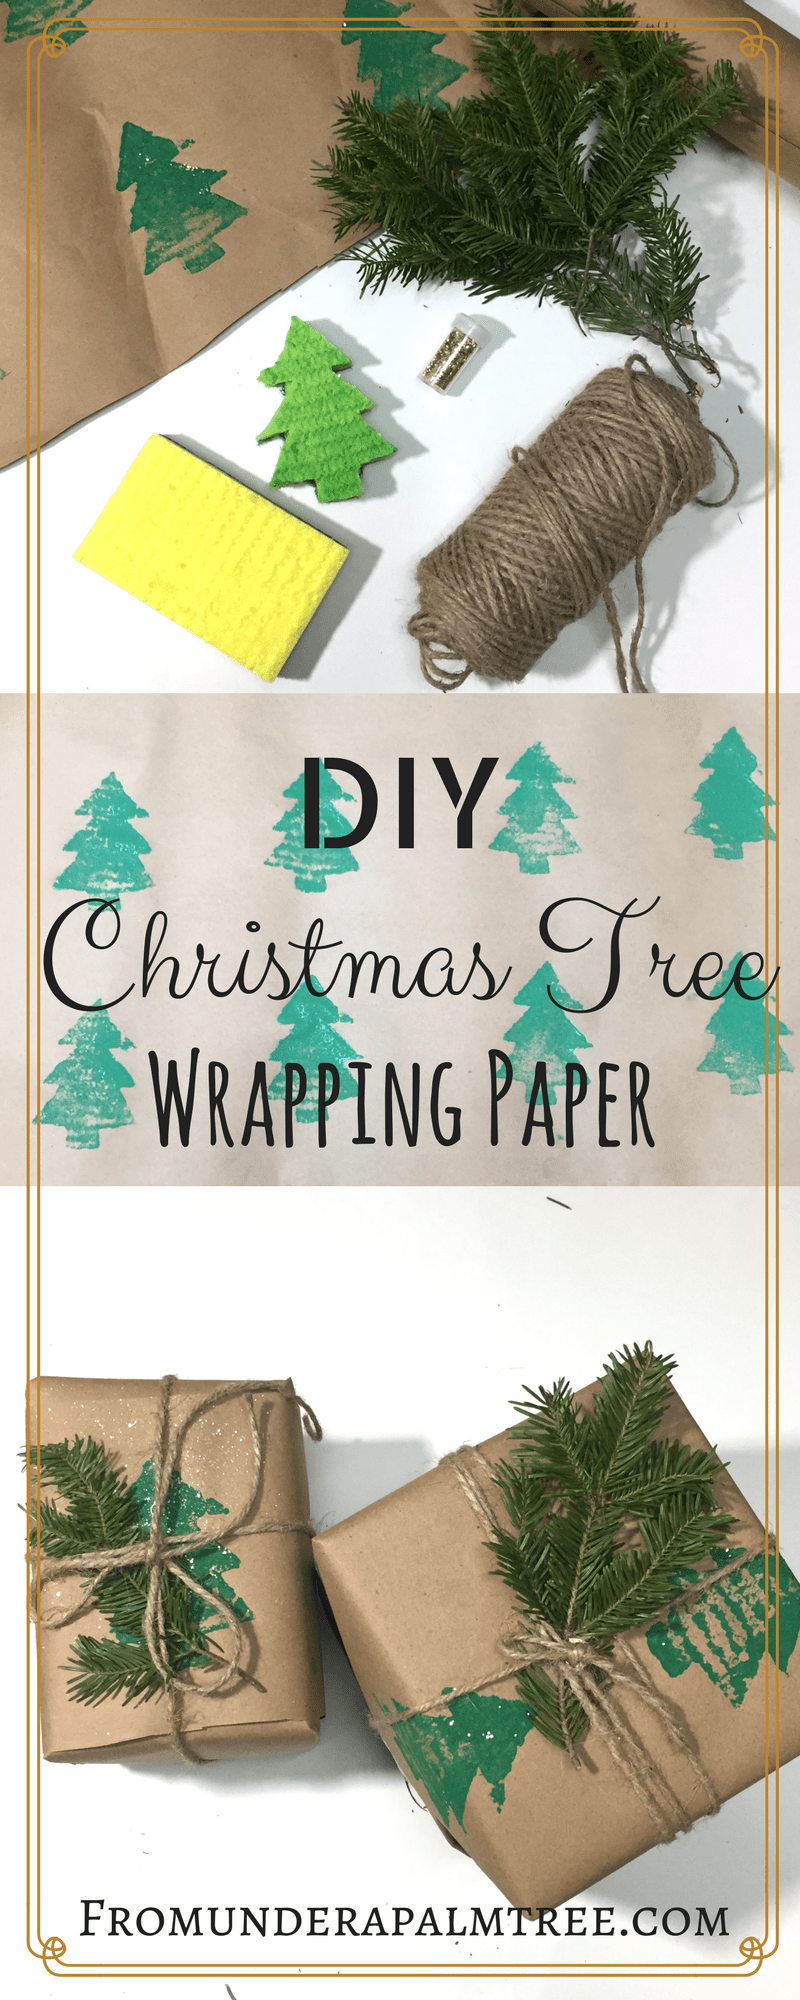 DIY Christmas Tree Wrapping Paper | DIY Christmas Wrapping Paper | DIY | Christmas Wrapping Paper | Christmas Tree Wrapping Paper | Gift Wrapping | Christmas gift wrapping | Sustainable wrapping paper | Green gifts | Green wrapping paper | eco-friendly wrapping paper | eco-friendly | sustainable living |